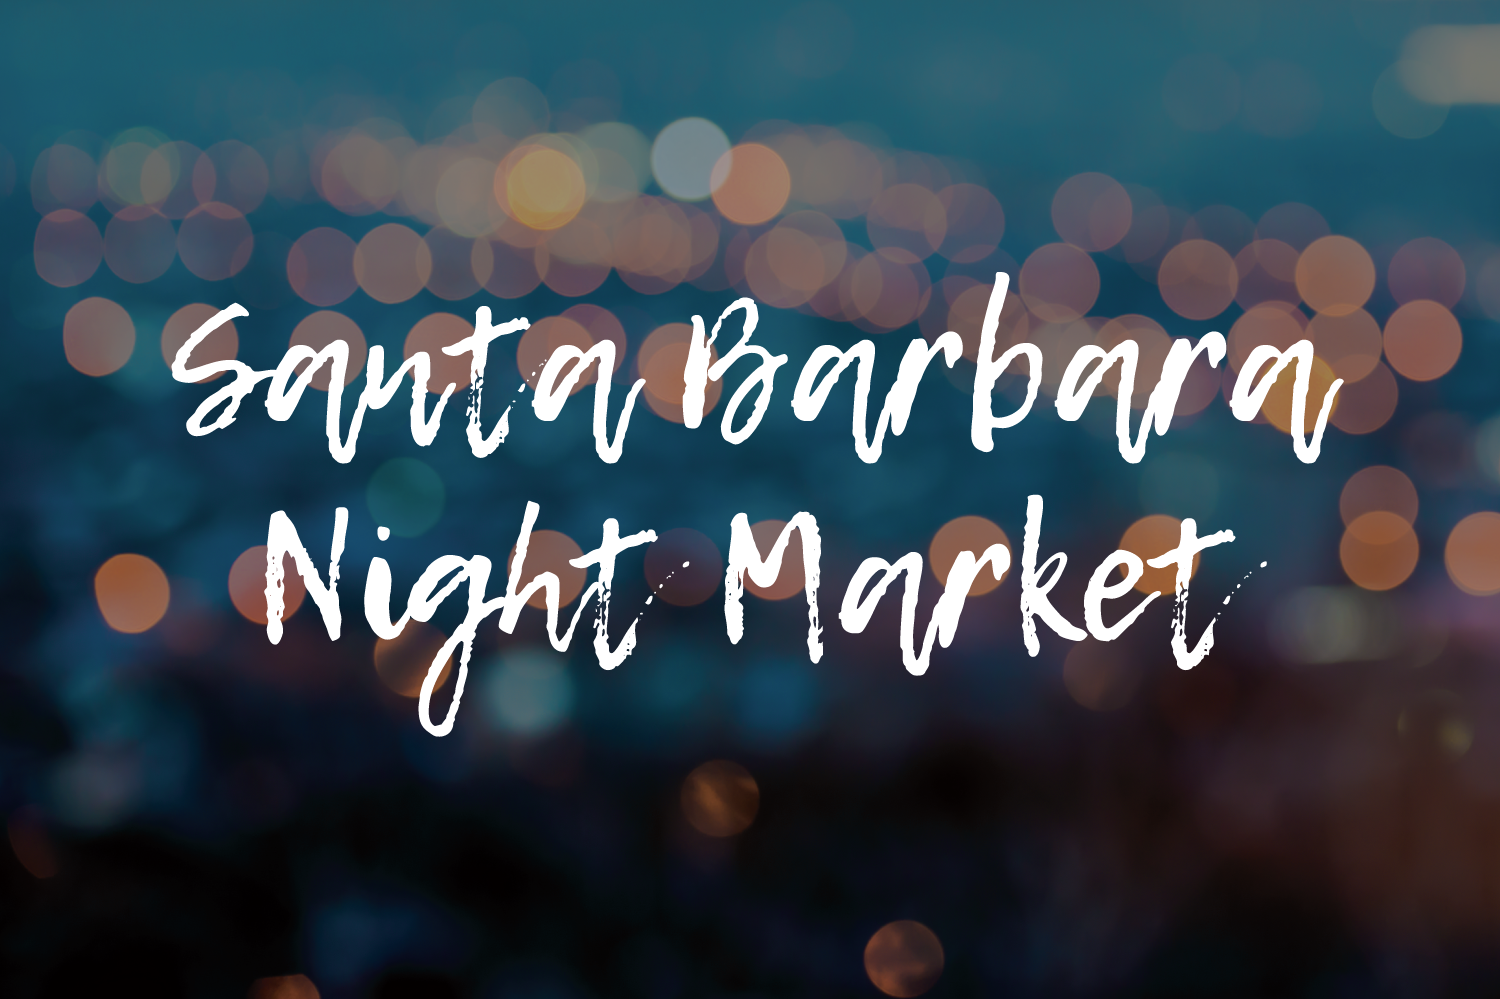 santa barbara night market print